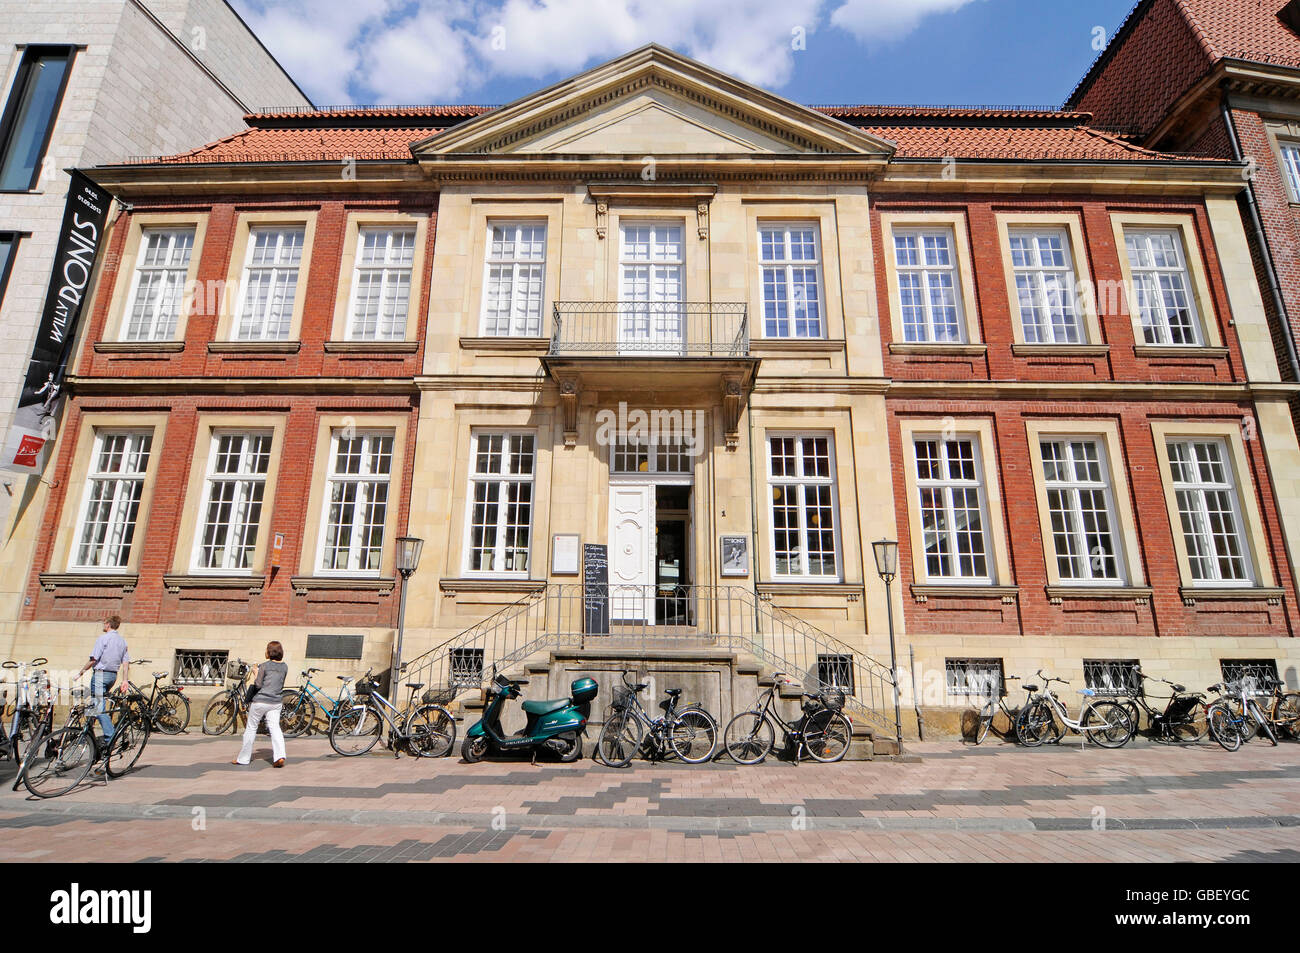 Pablo Picasso, Museum of Graphic Art, art museum, Muenster, Muensterland, North Rhine-Westphalia, Germany / Münsterland, - Stock Image